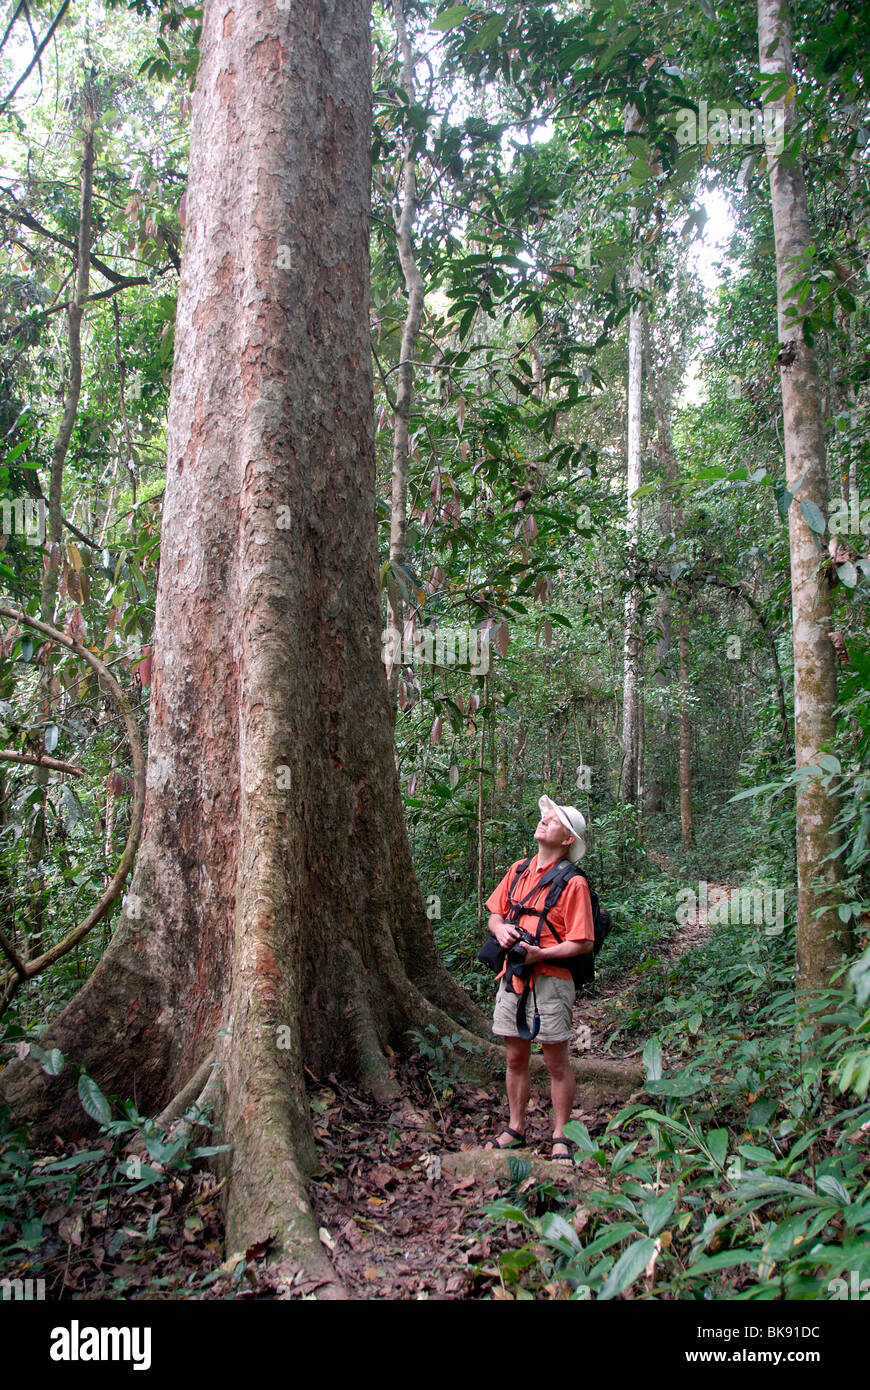 Trekking, hiking is amazed by a giant tree, mighty tree in the jungle, Nam Lan Conservation Area, in Boun Tai, Phongsali - Stock Image